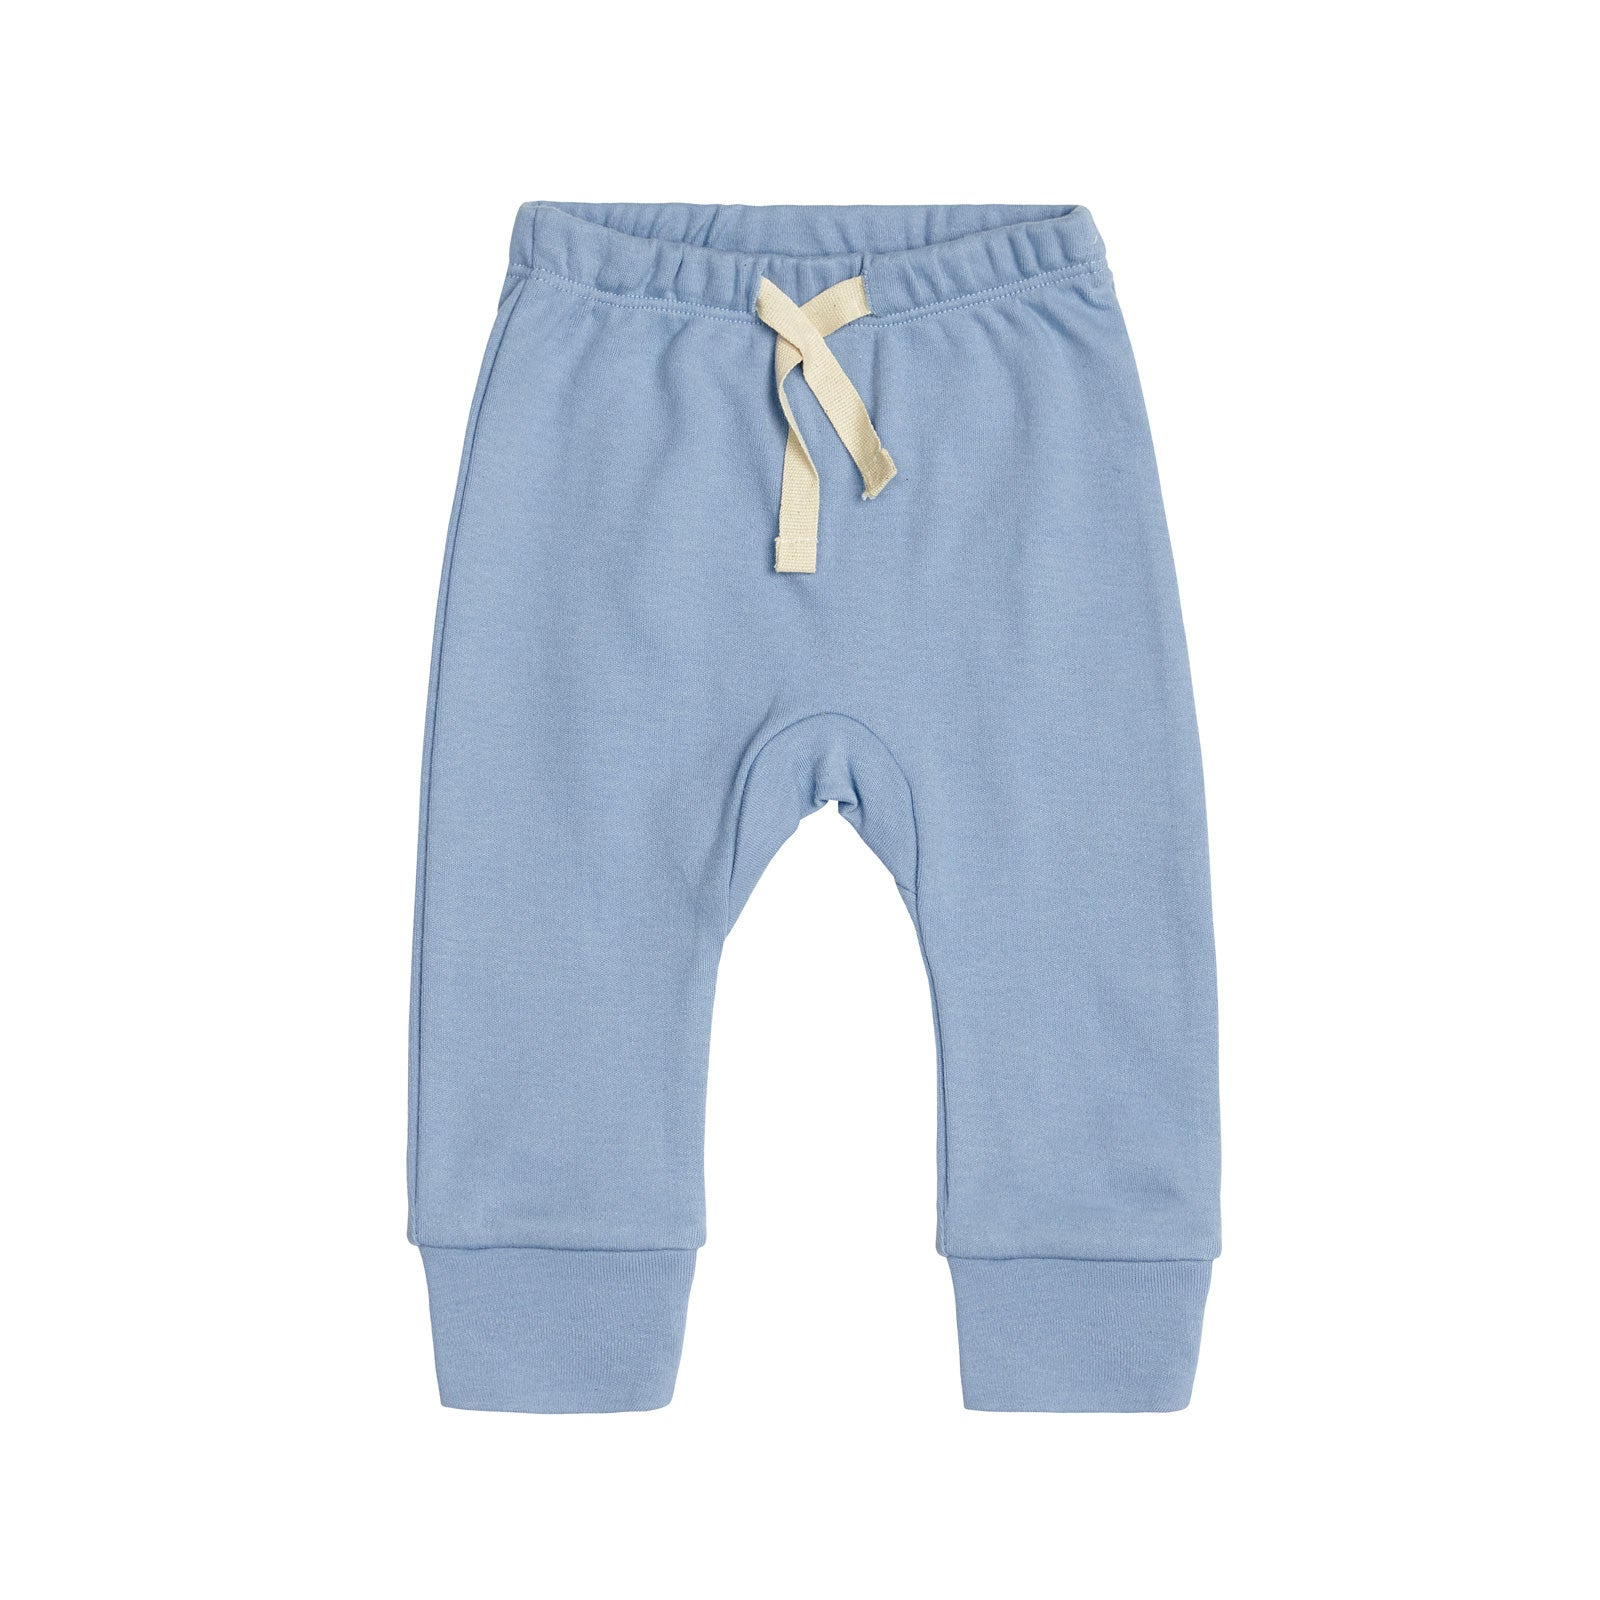 Sapling Child Essentials Heart Pants Sapling Child Baby & Toddler Clothing 0-3M / Little Boy Blue at Little Earth Nest Eco Shop